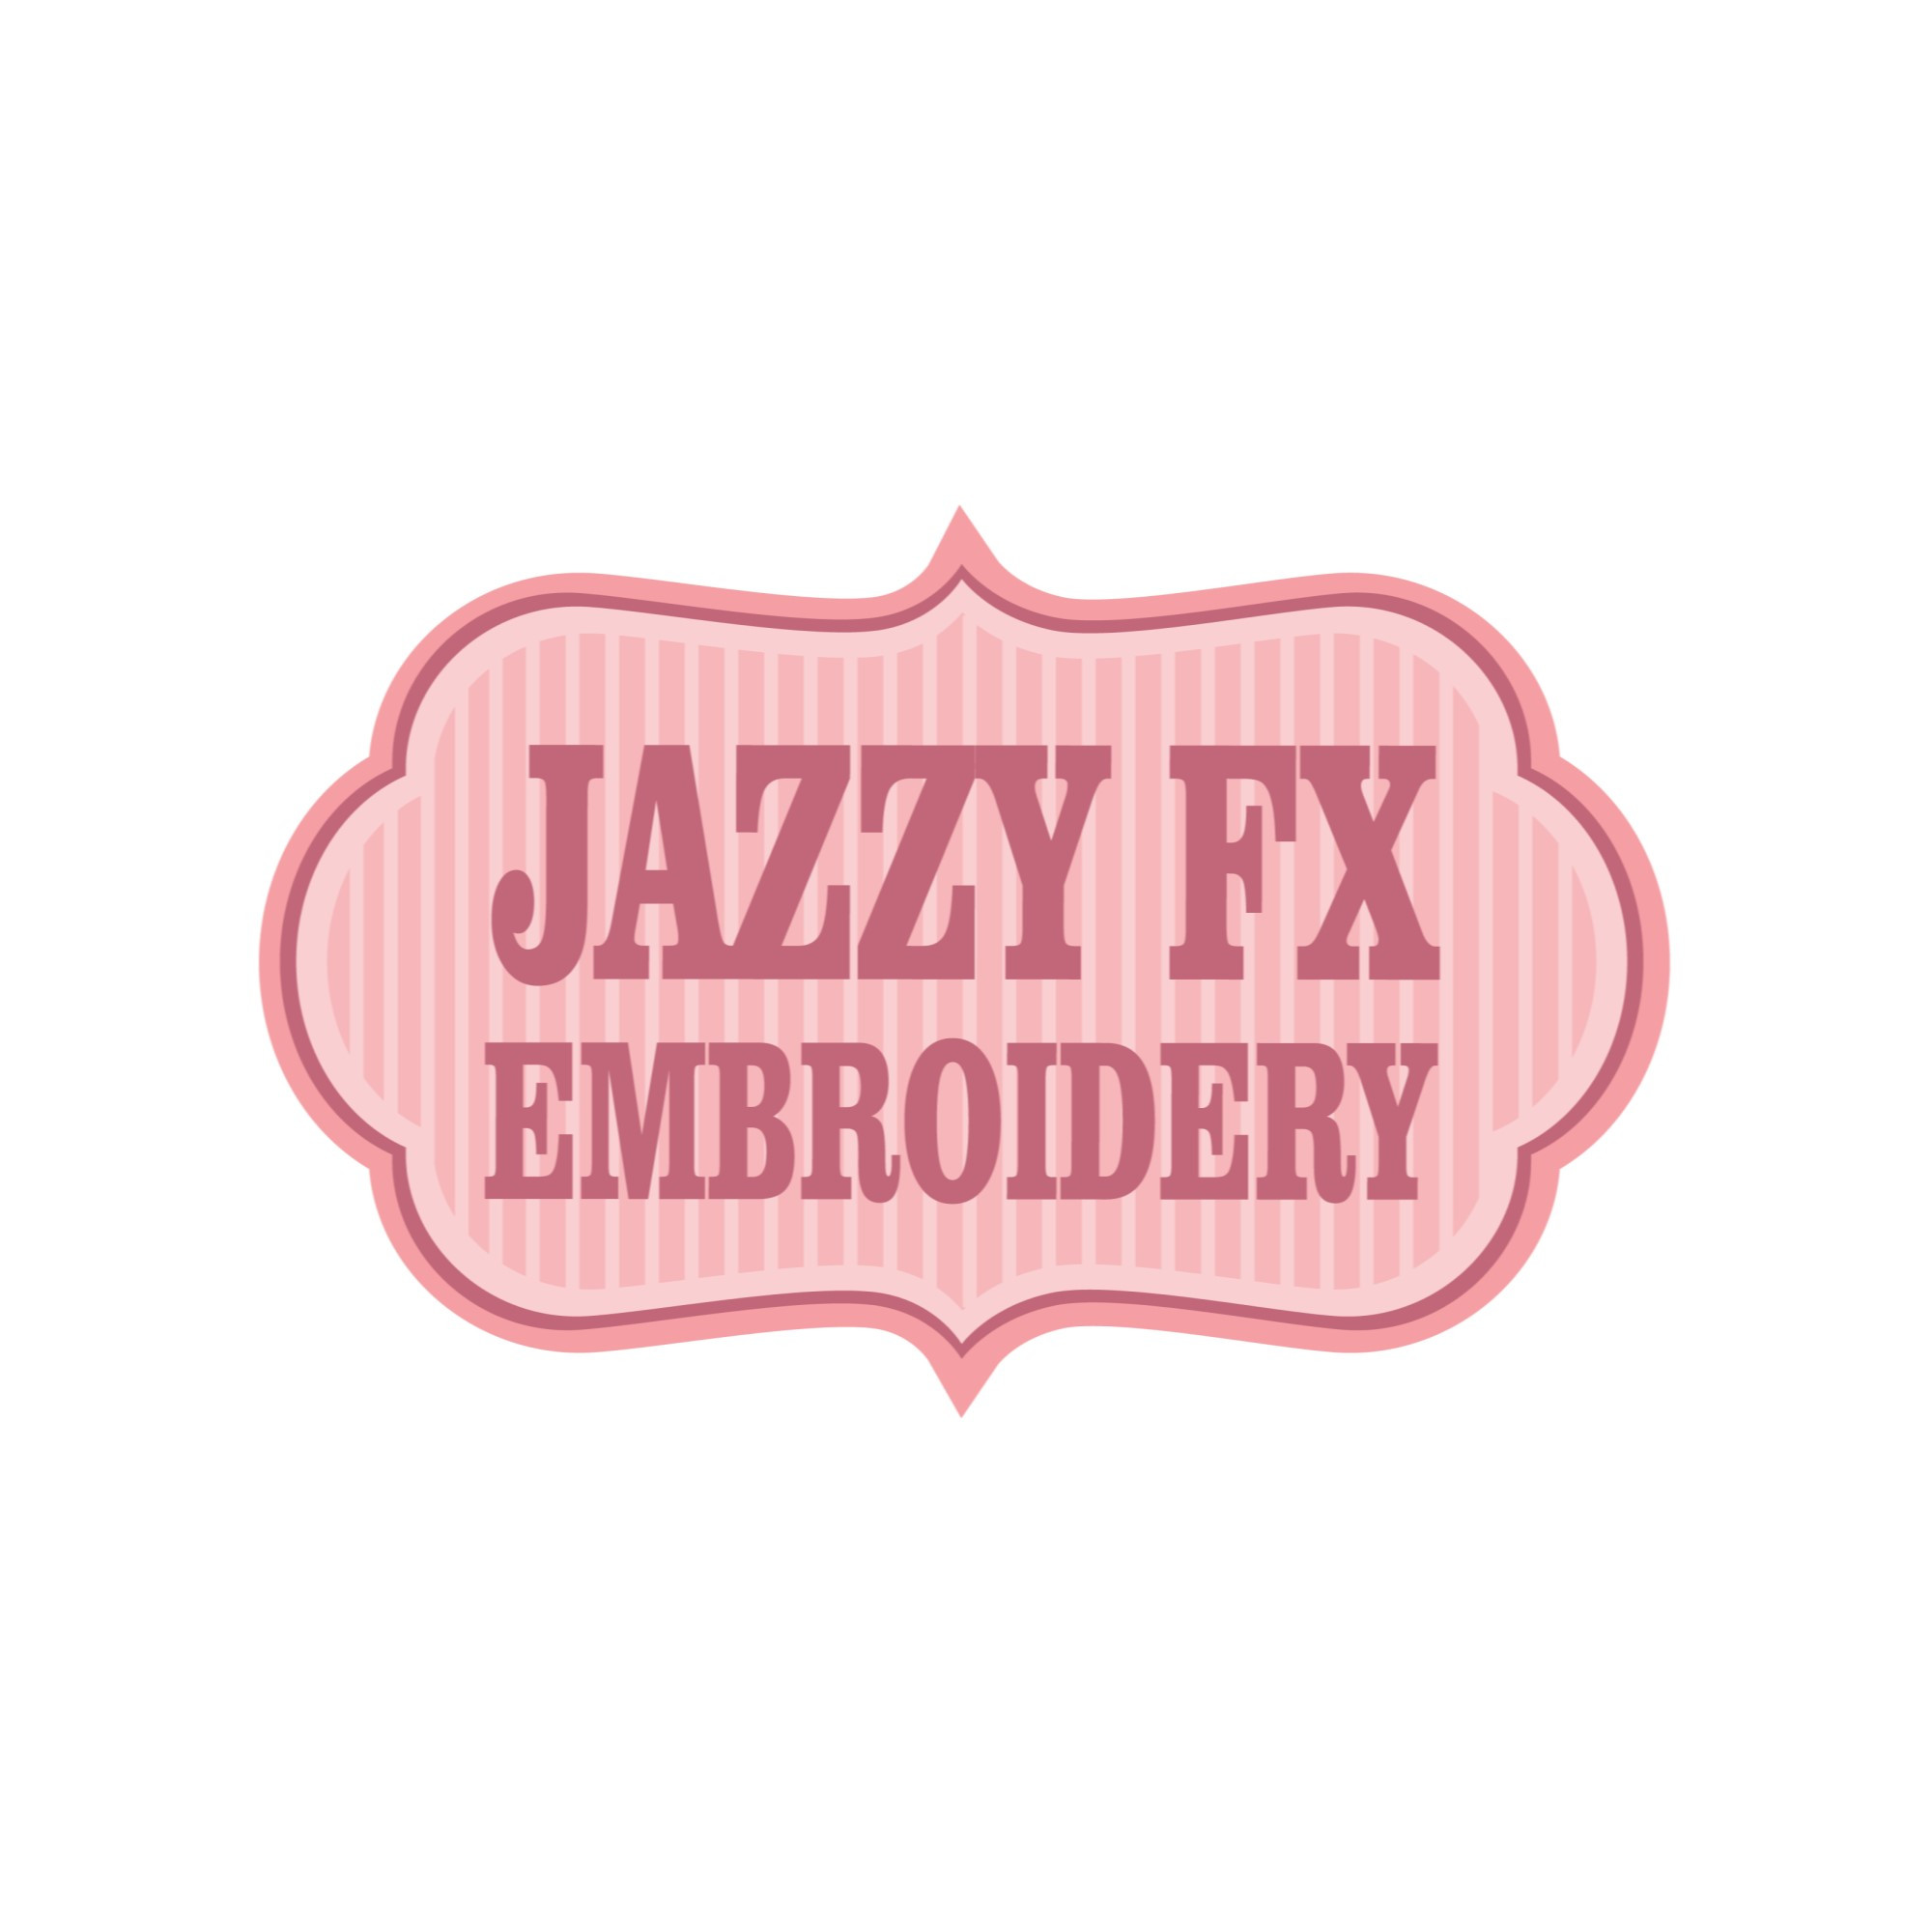 Jazzy FX Embroidery's profile picture